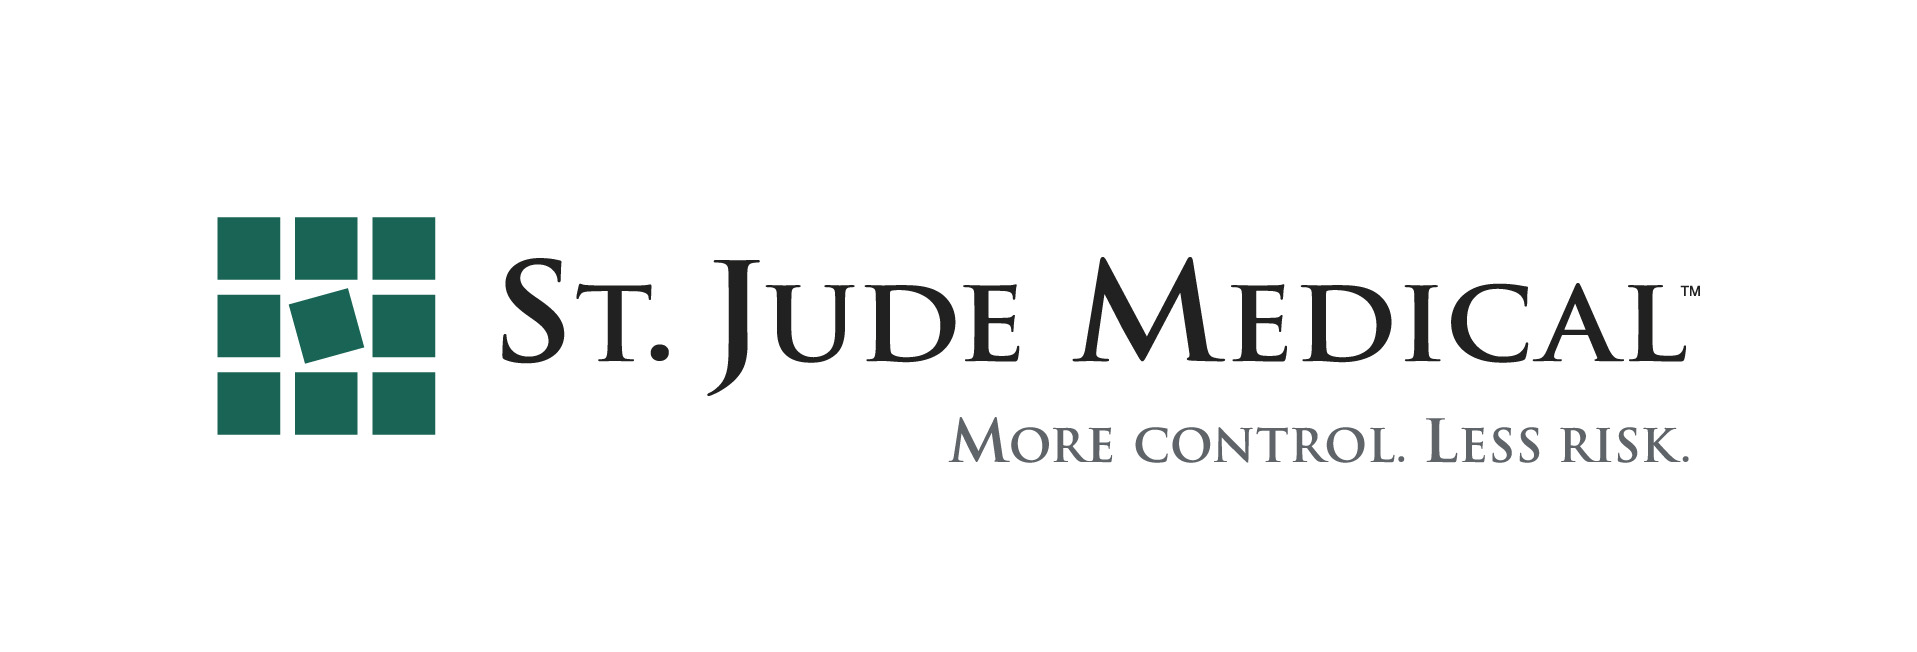 St Jude S Patient Monitoring System Gets Host Of Upgrades